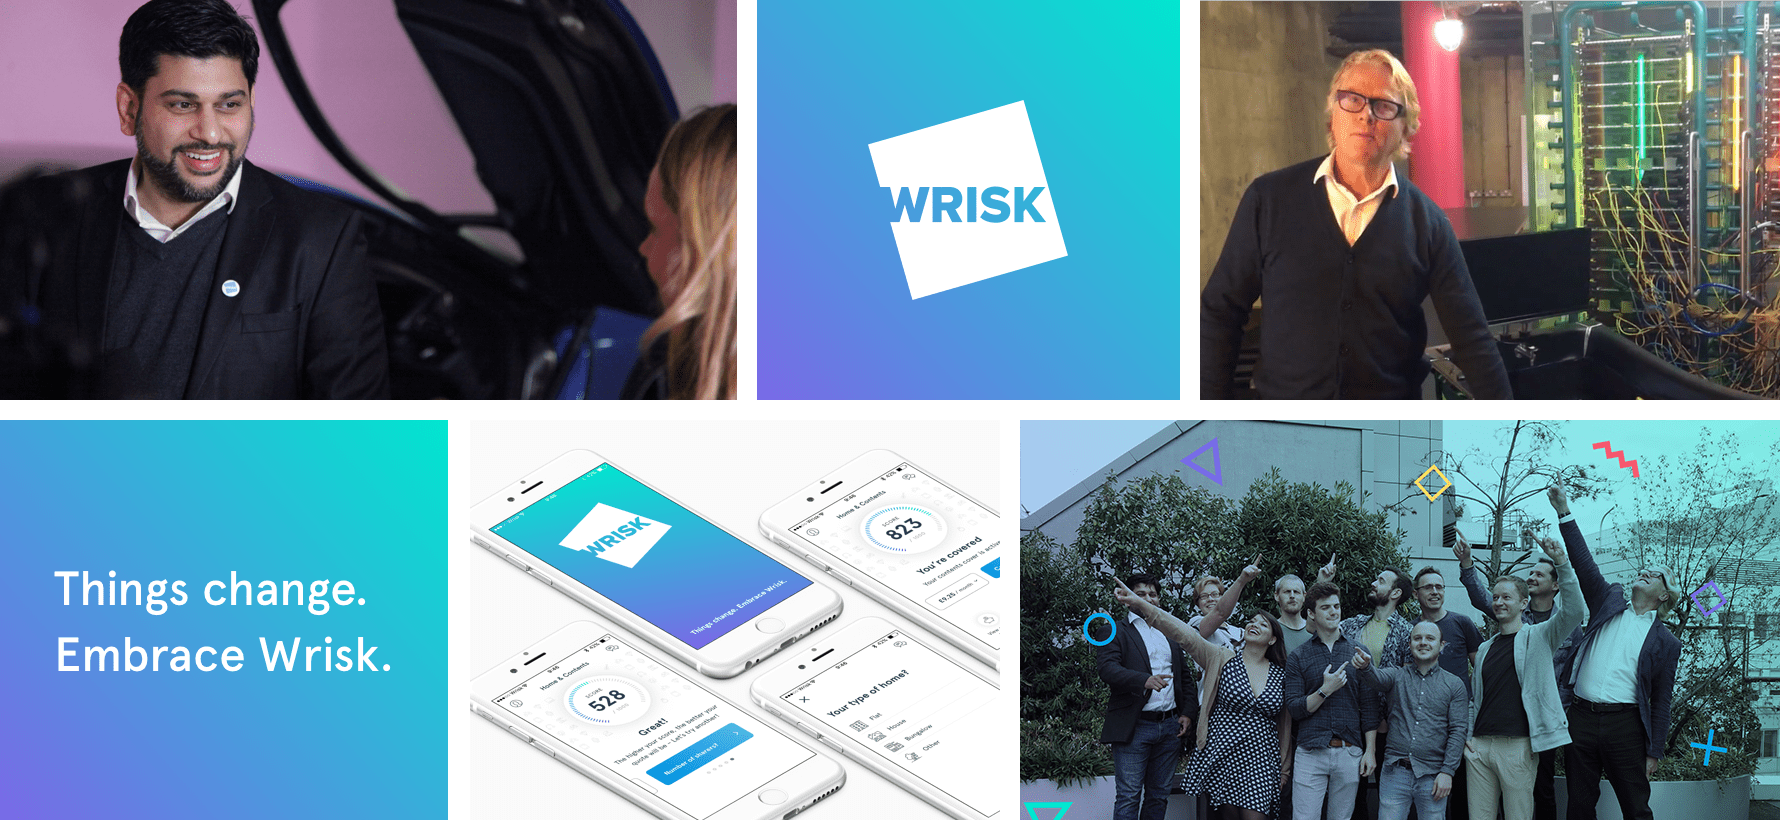 Image about the Wrisk team